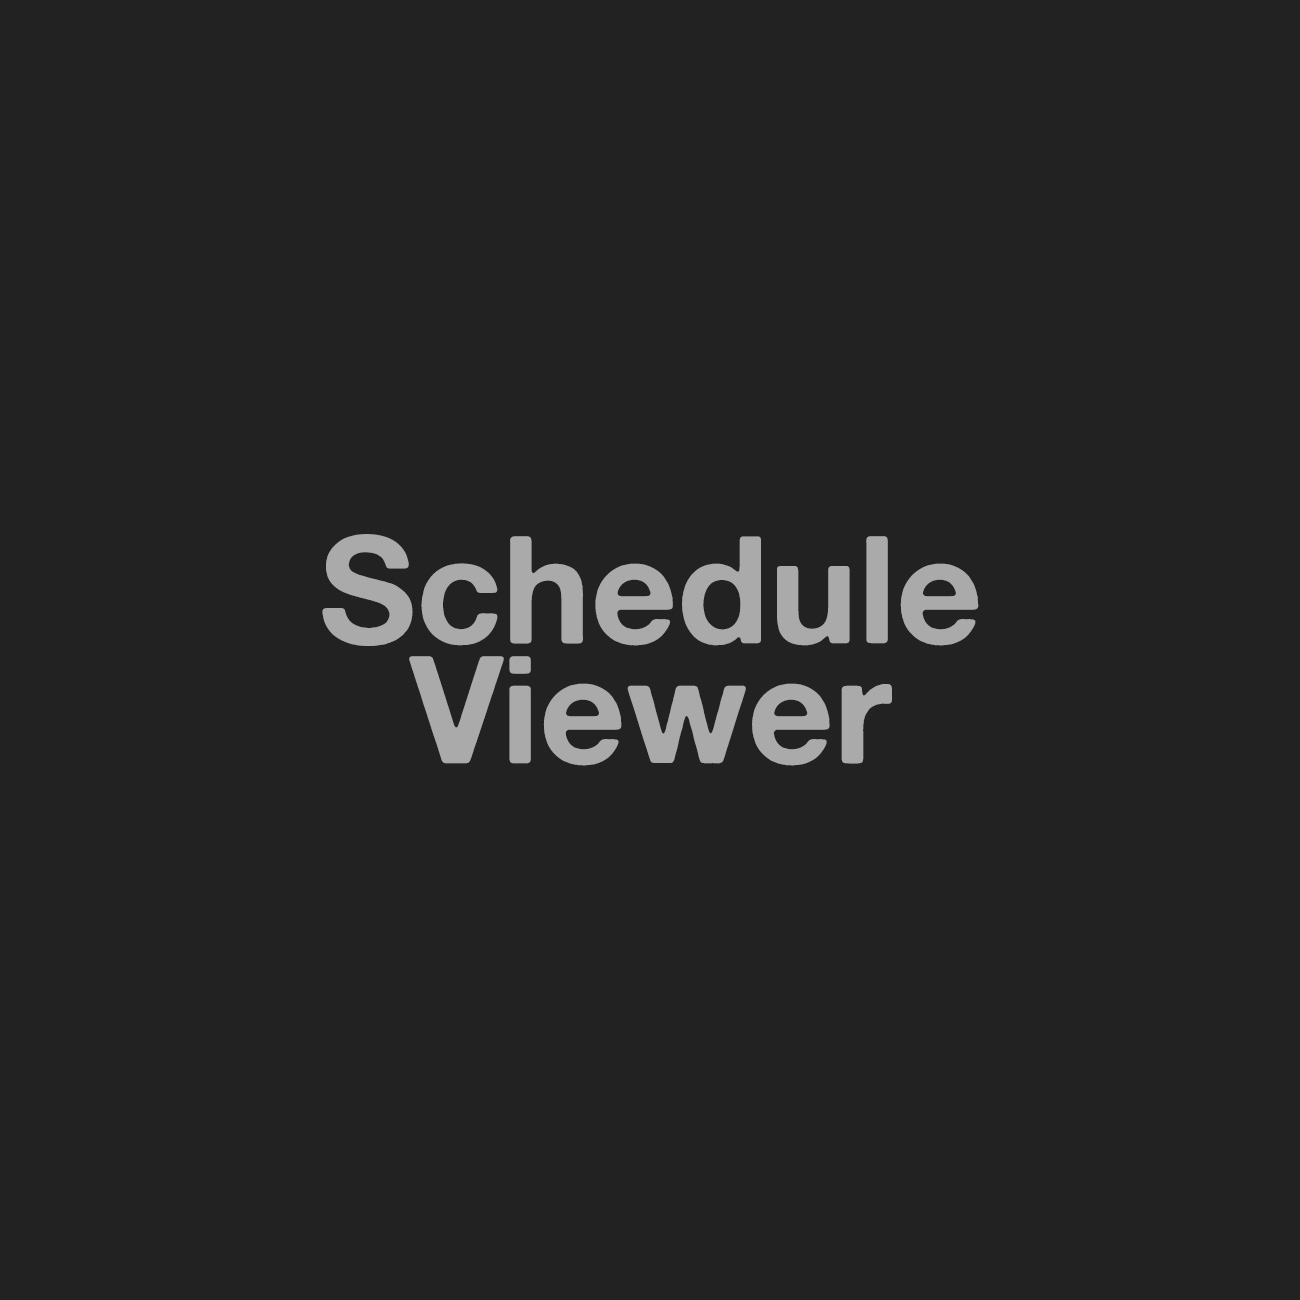 scheduleviewer-logo